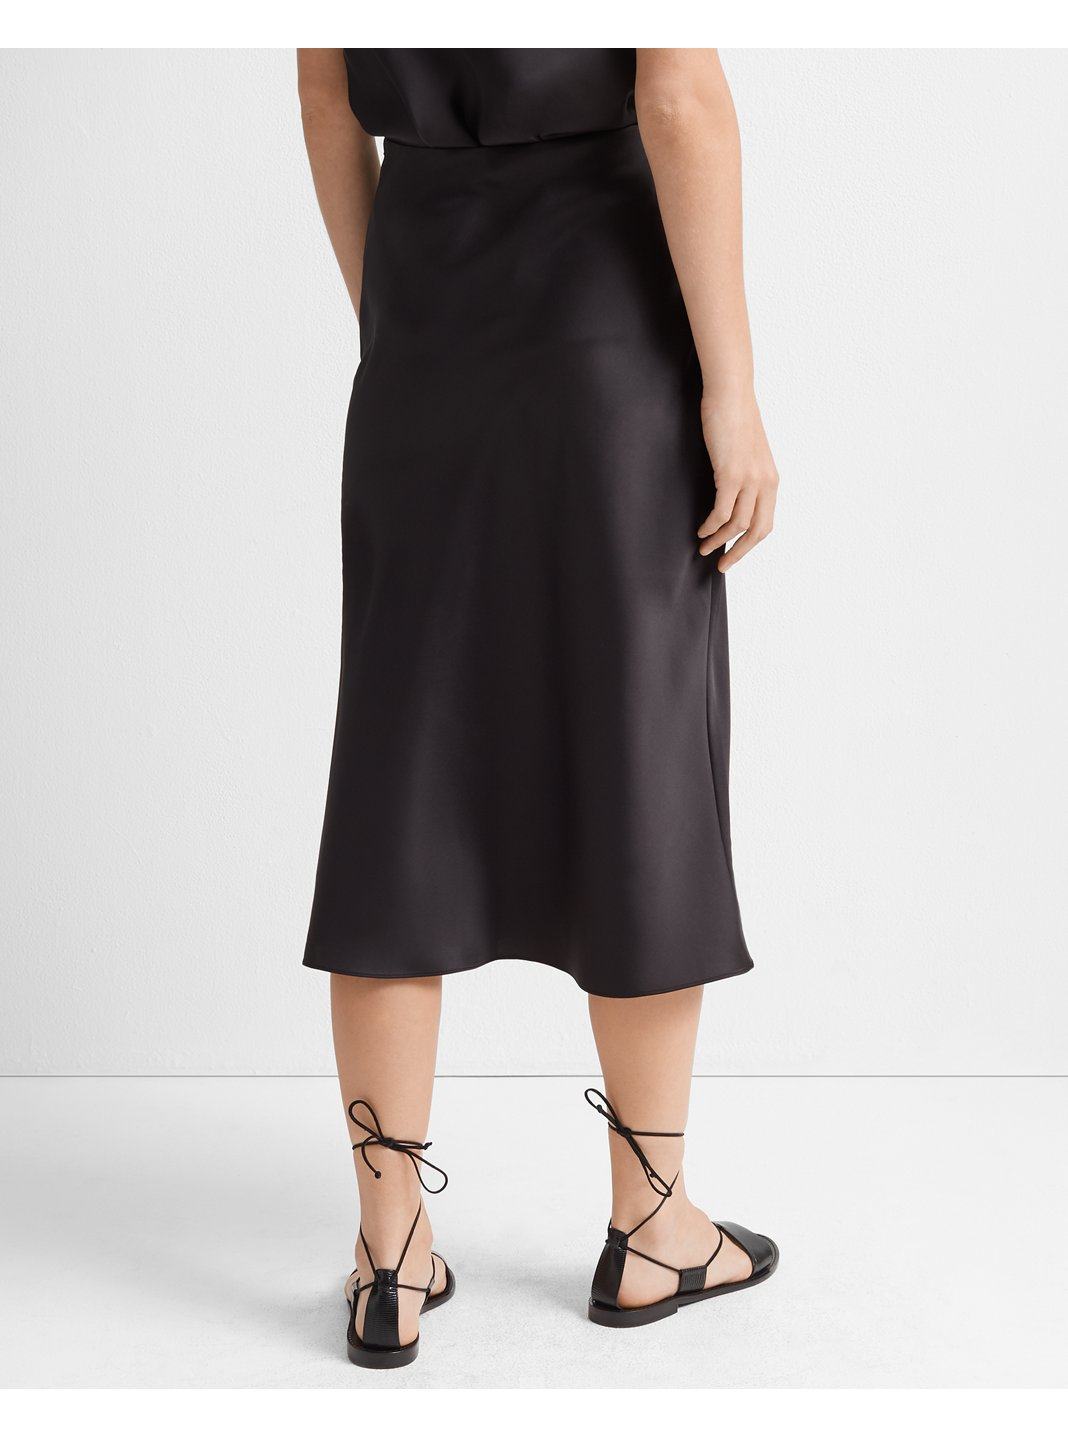 177211d9fc5e2c Save to Favorites · Trycia Skirt